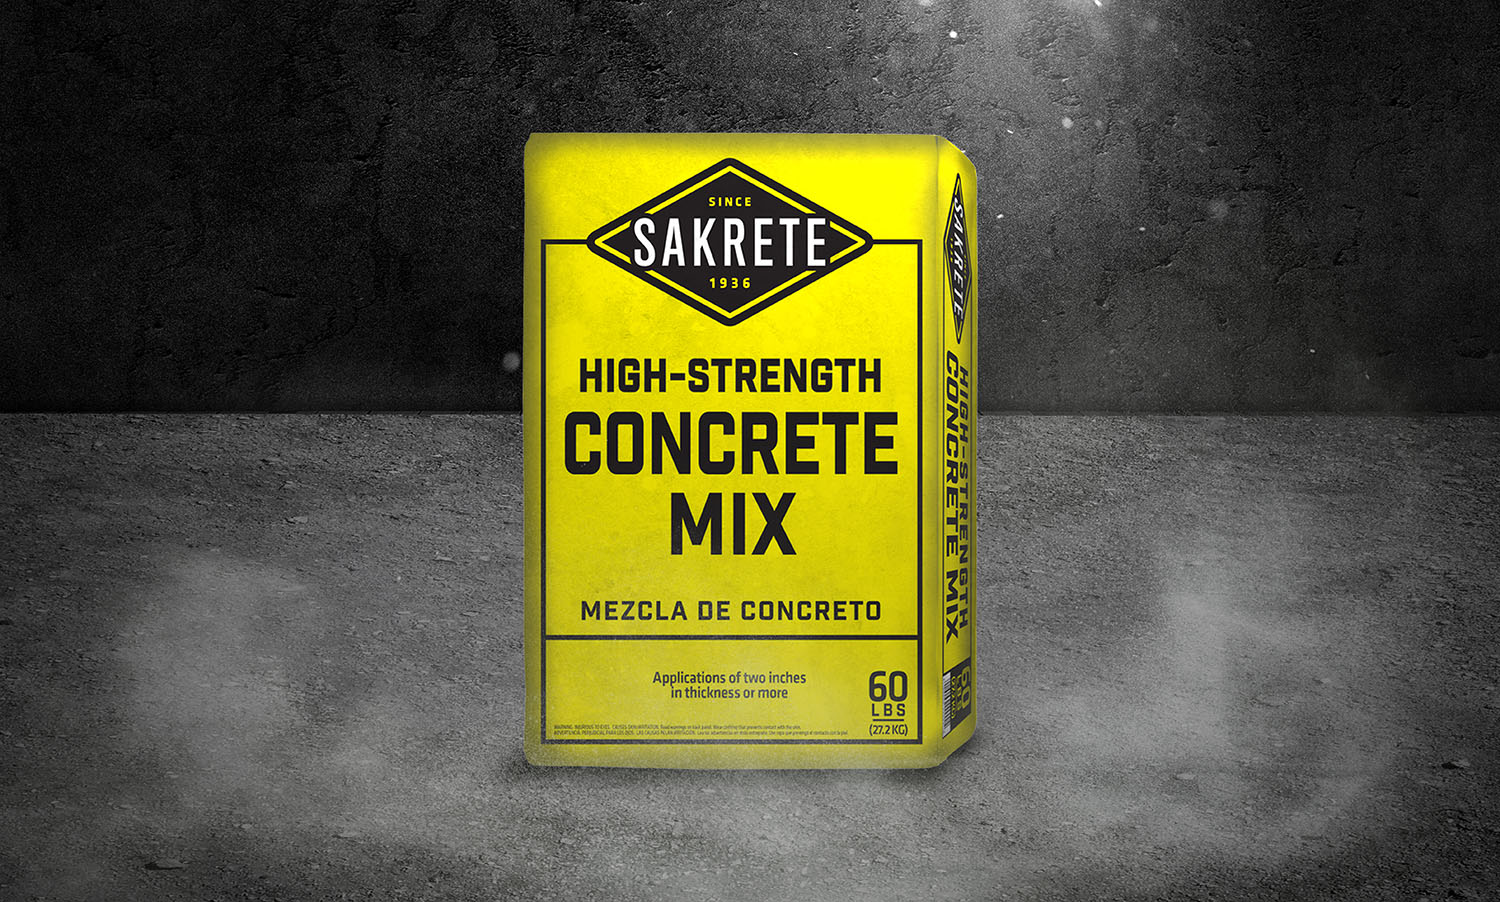 Sakrete | High Strength Concrete Mix Bag